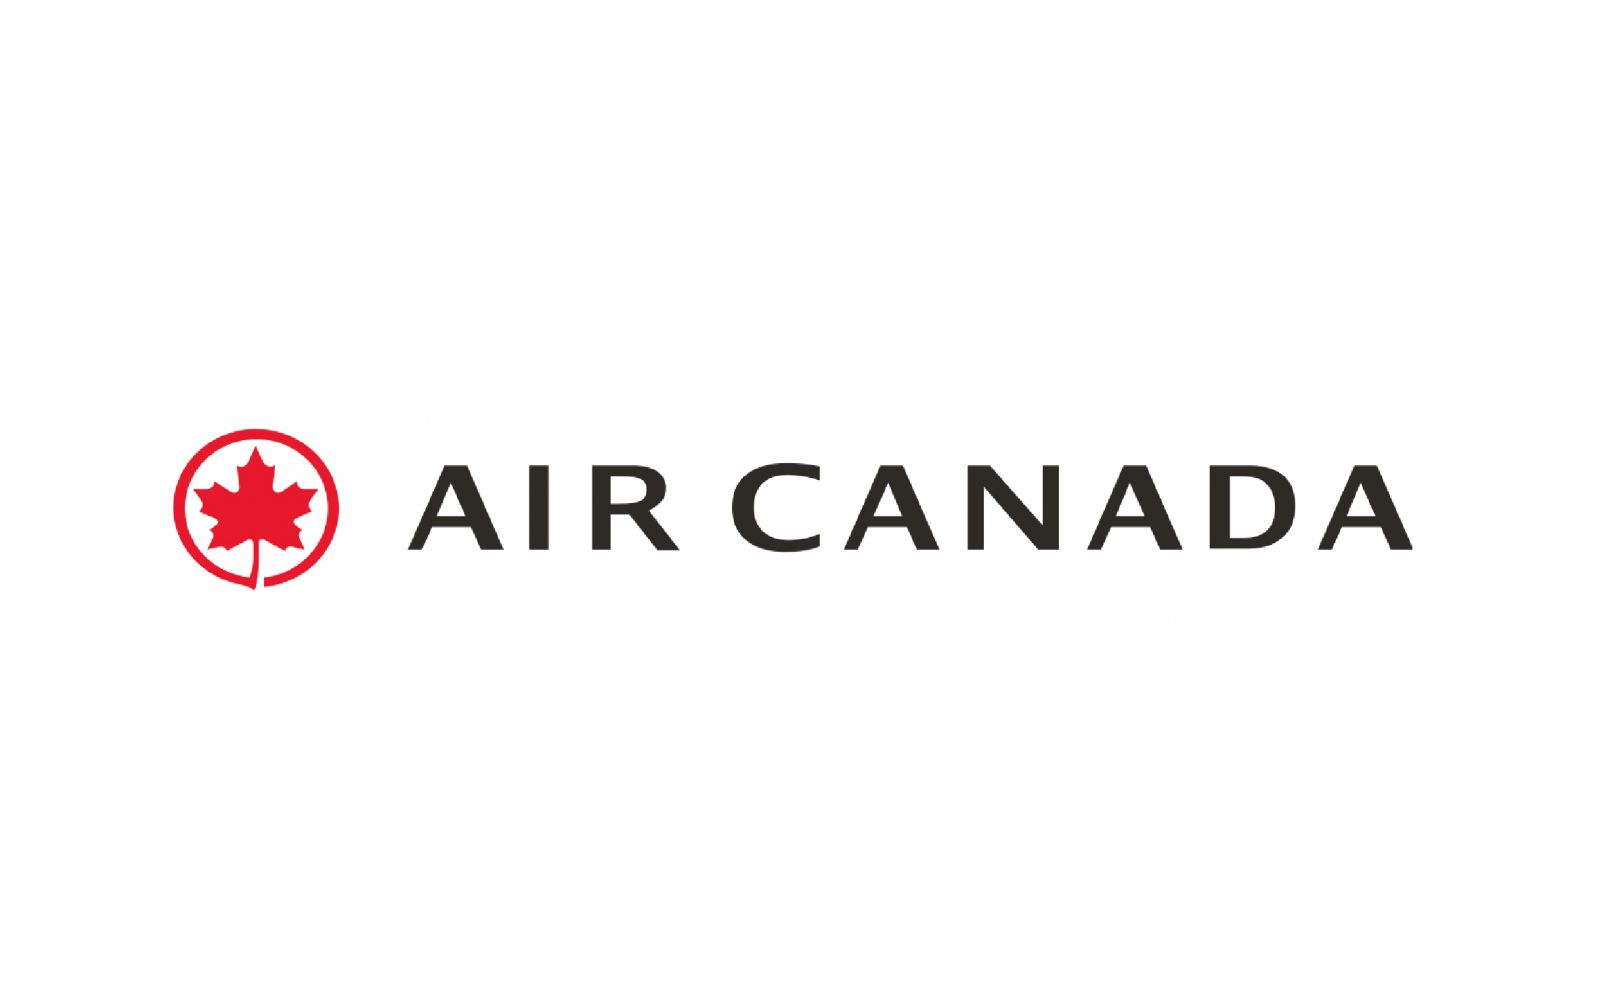 Air Canada is the first overseas airline to offer a transatlantic passenger service from Dublin Airport since the start of the pandemic